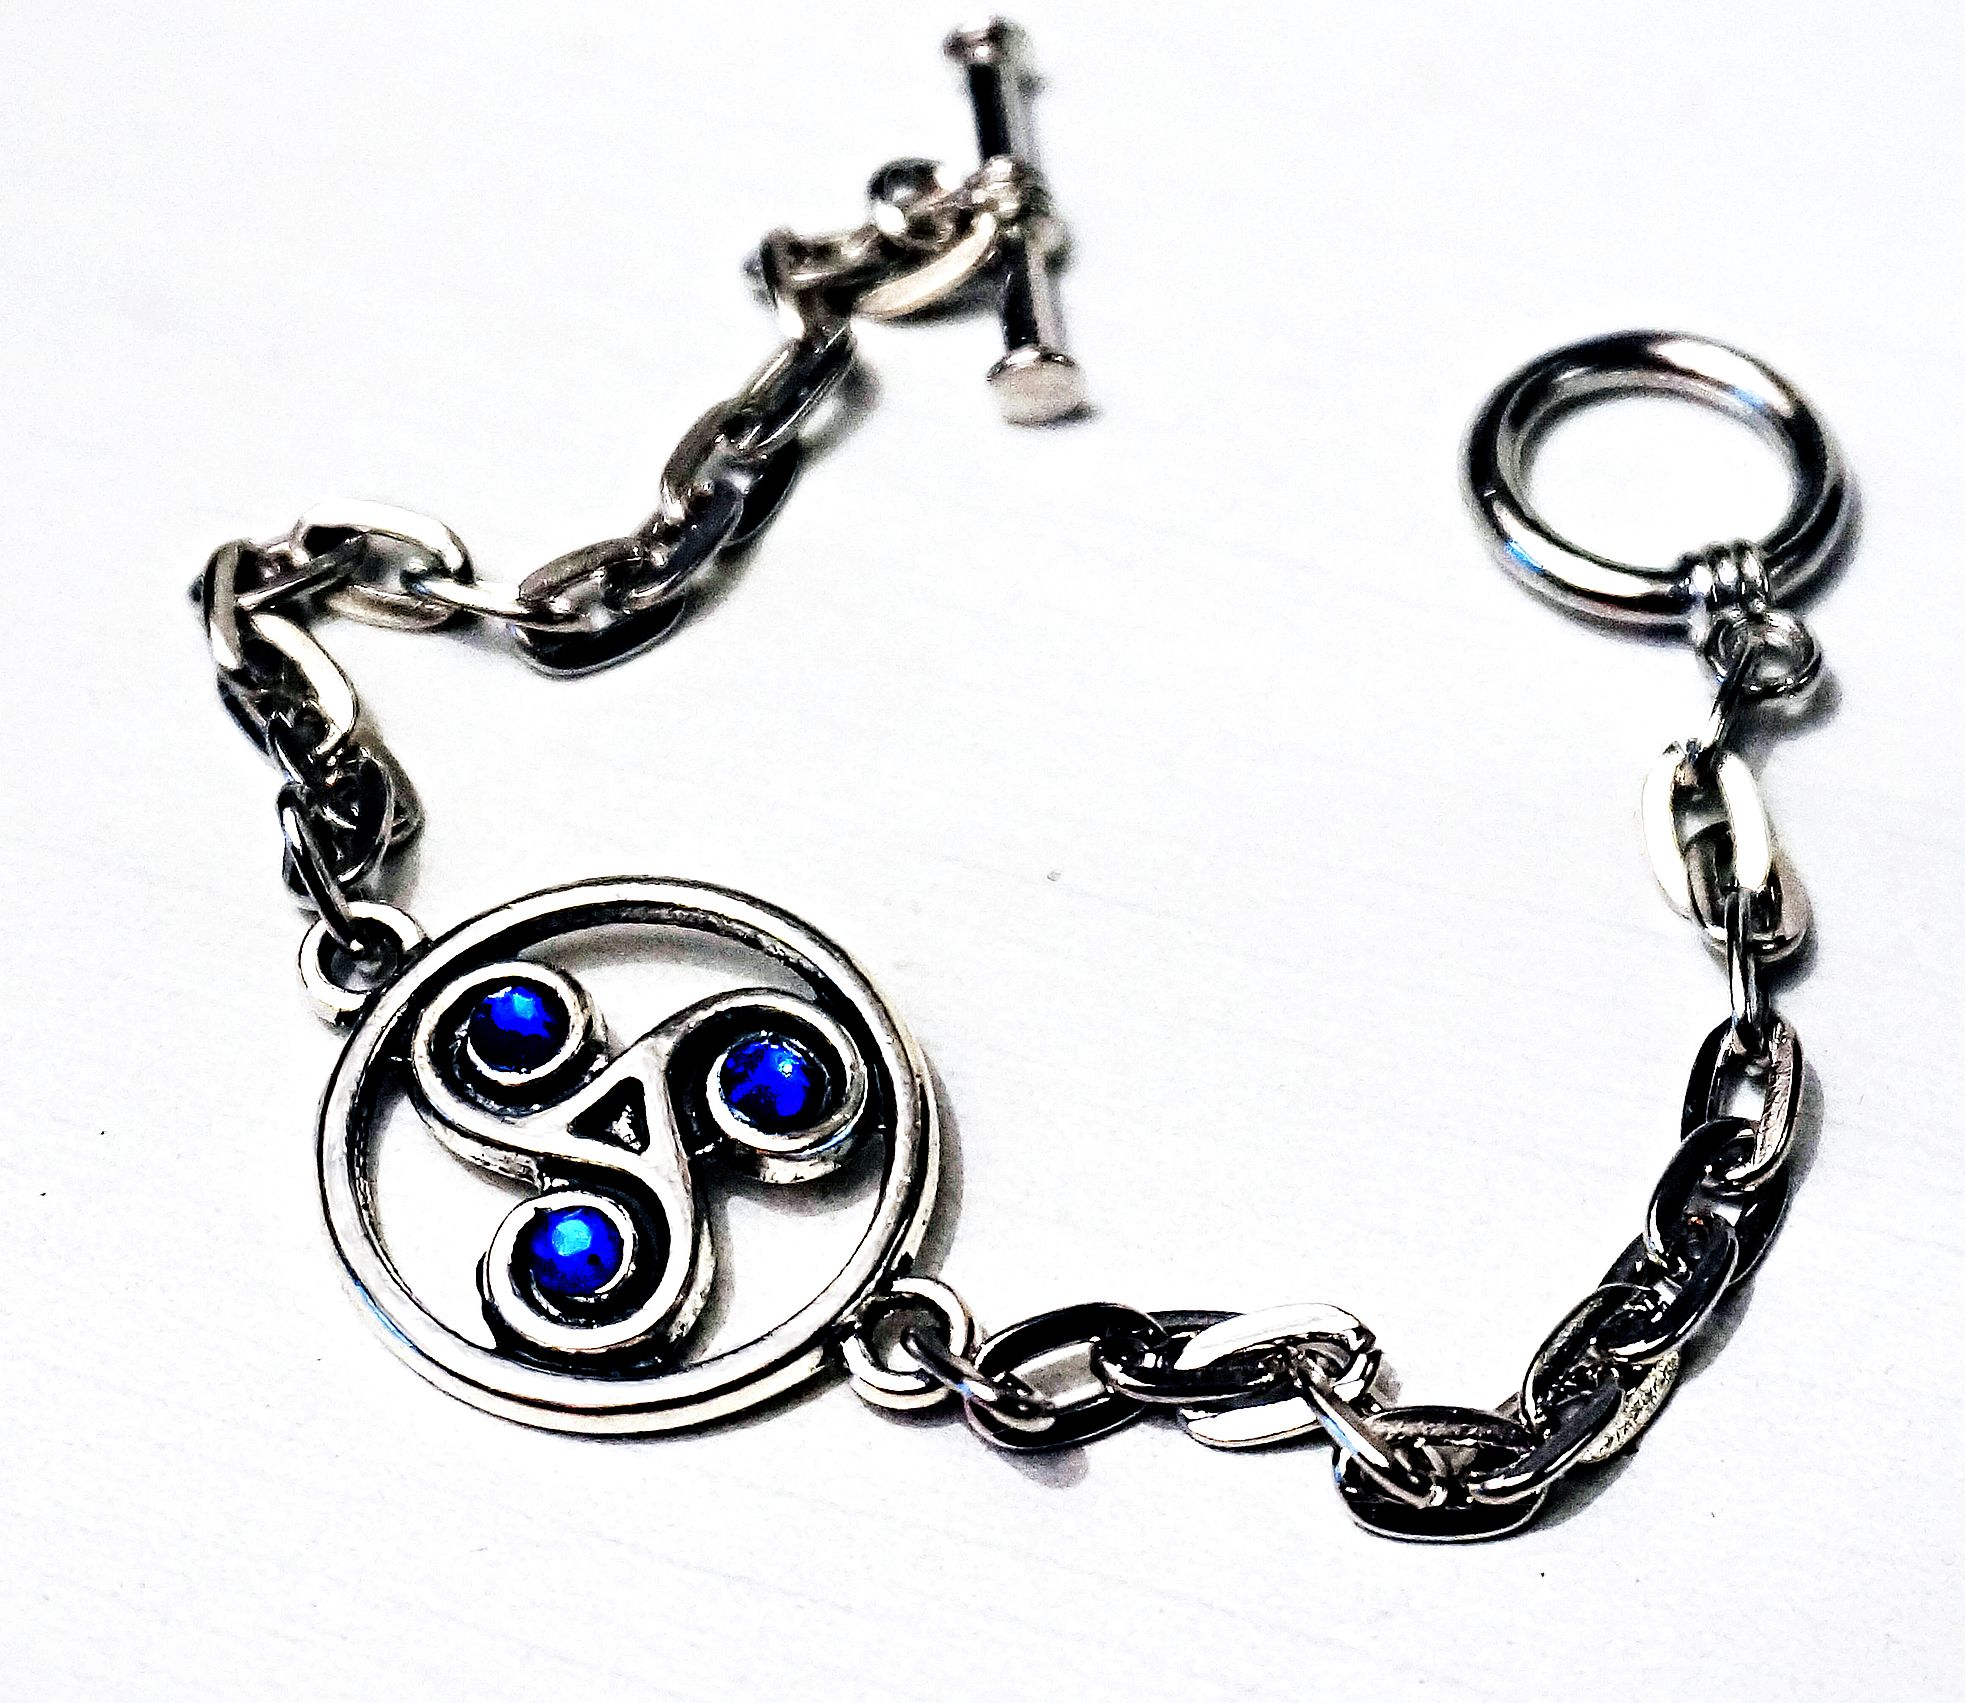 Bdsm Jewelry Symbol Triskele Metal Chain Bracelet Submissive Dominant